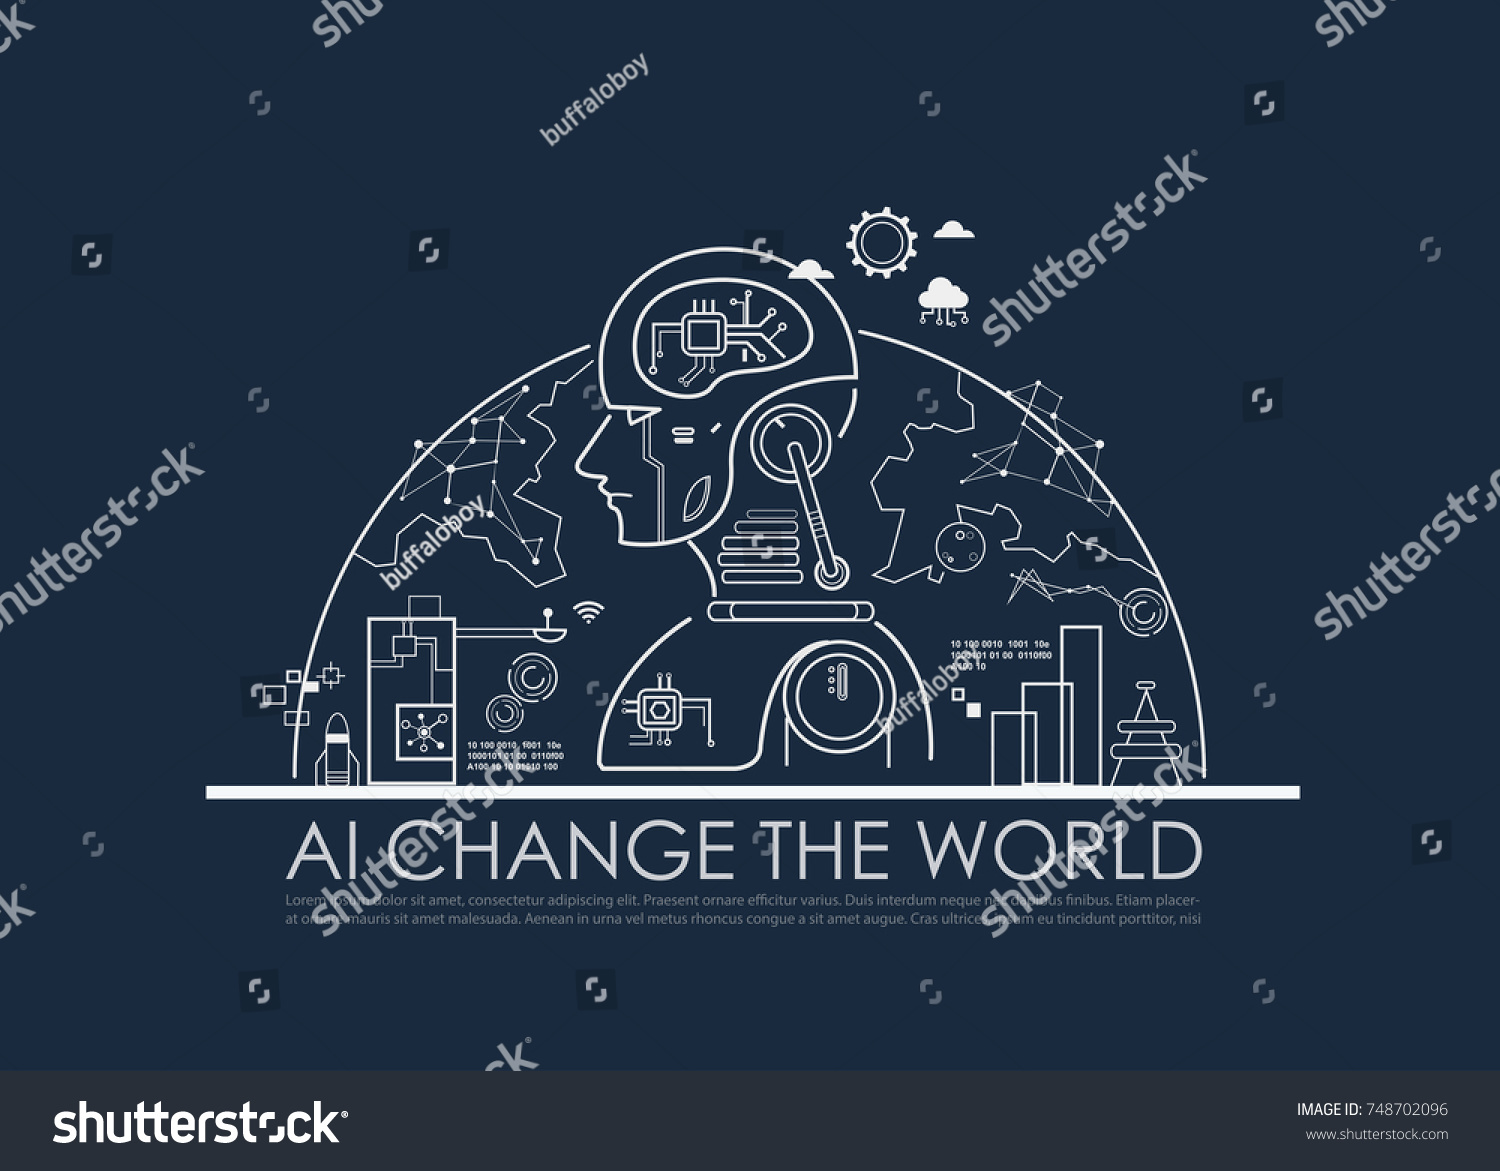 Artificial Intelligence Ai Change World Concept Stock Vector Circuit Board Background Free Graphics Download The Machine And Deep Learning Cloud